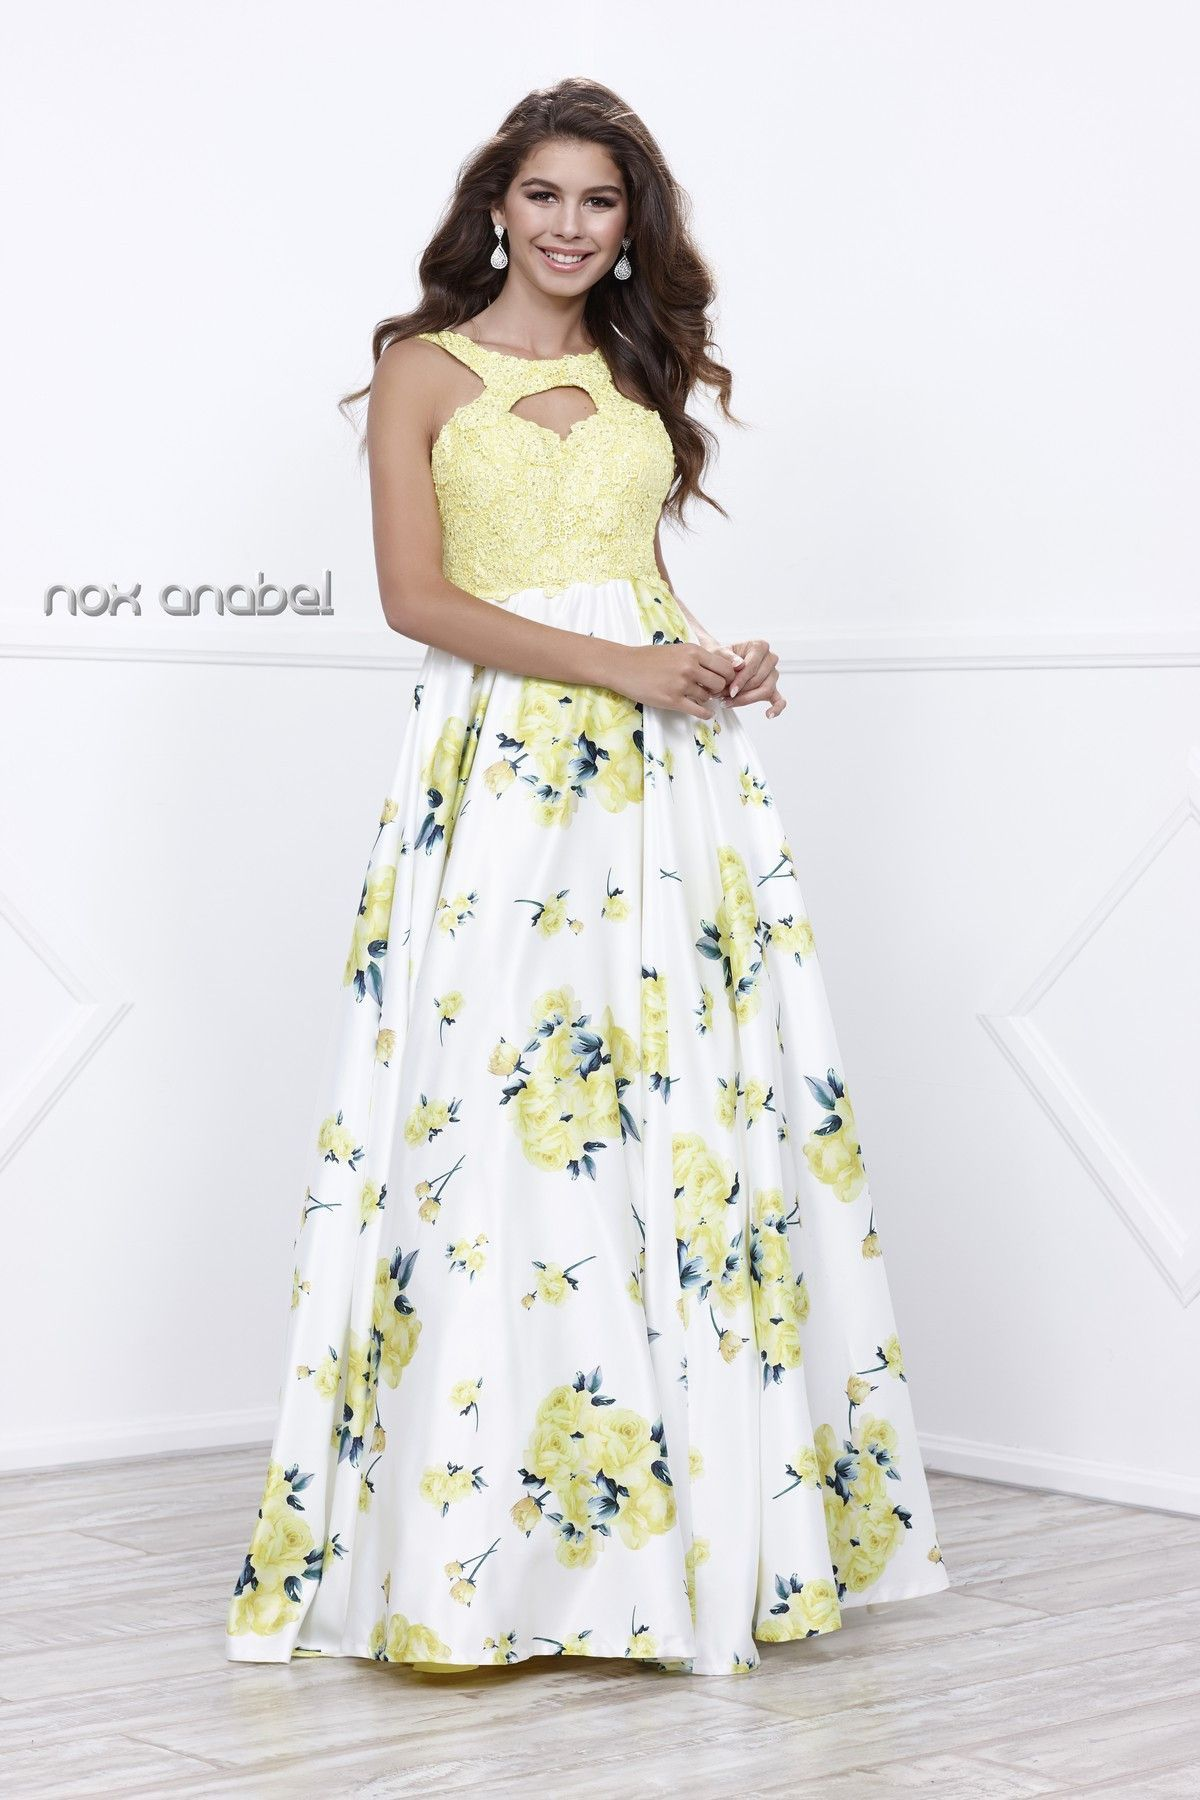 Sleeveless yellow floral print dress by nox anabel floral